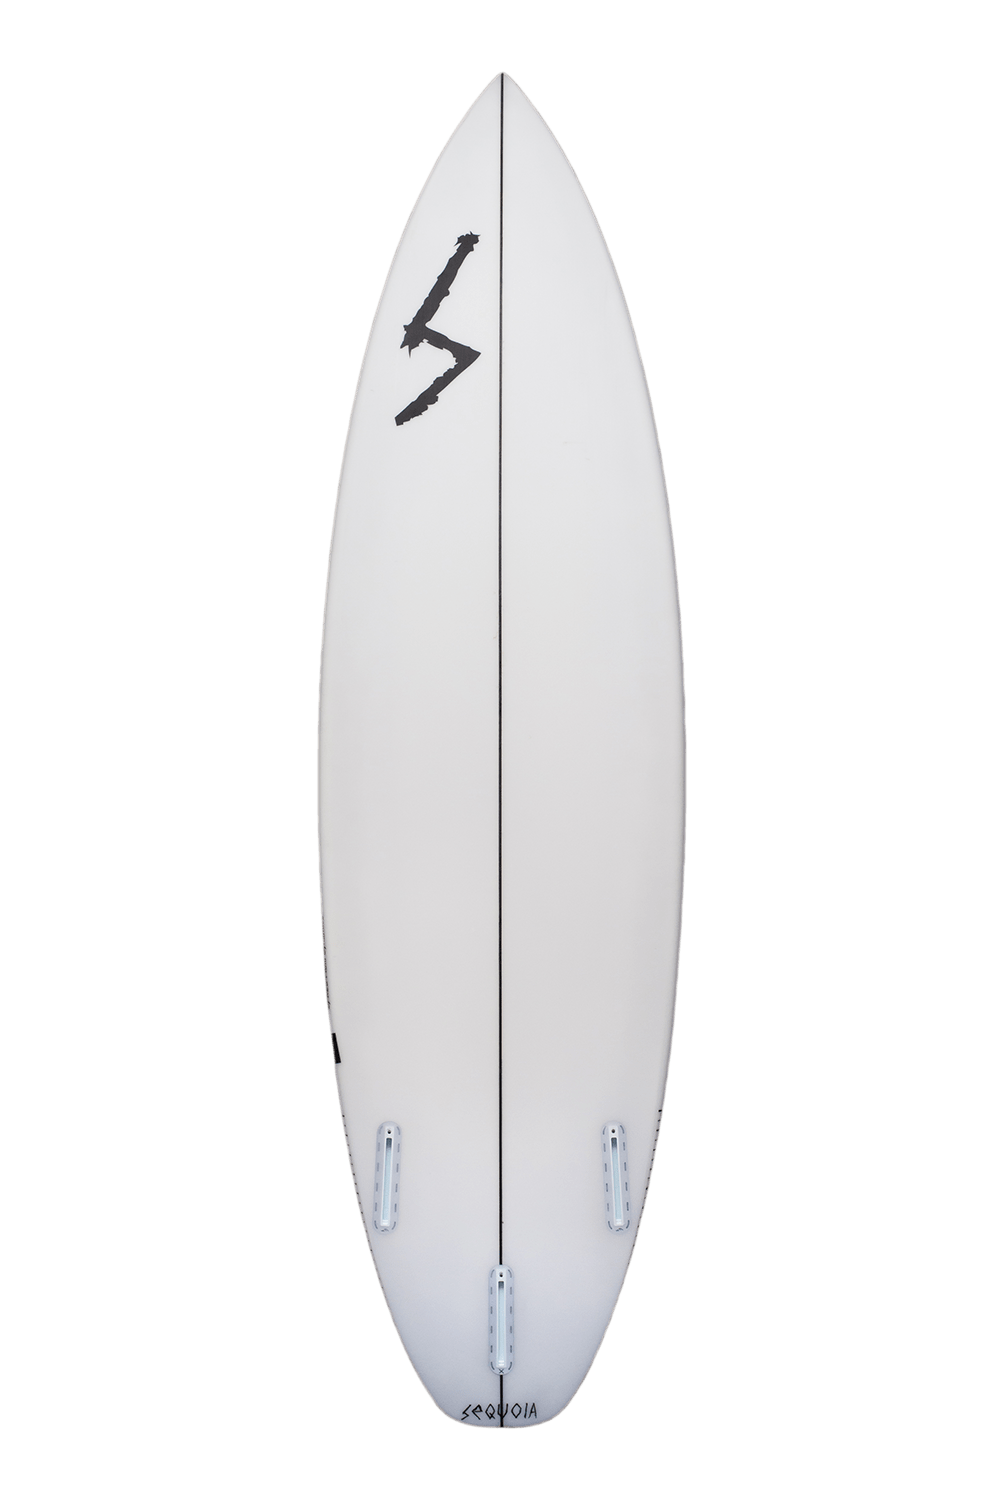 Carlos surfboards wsl qs shape